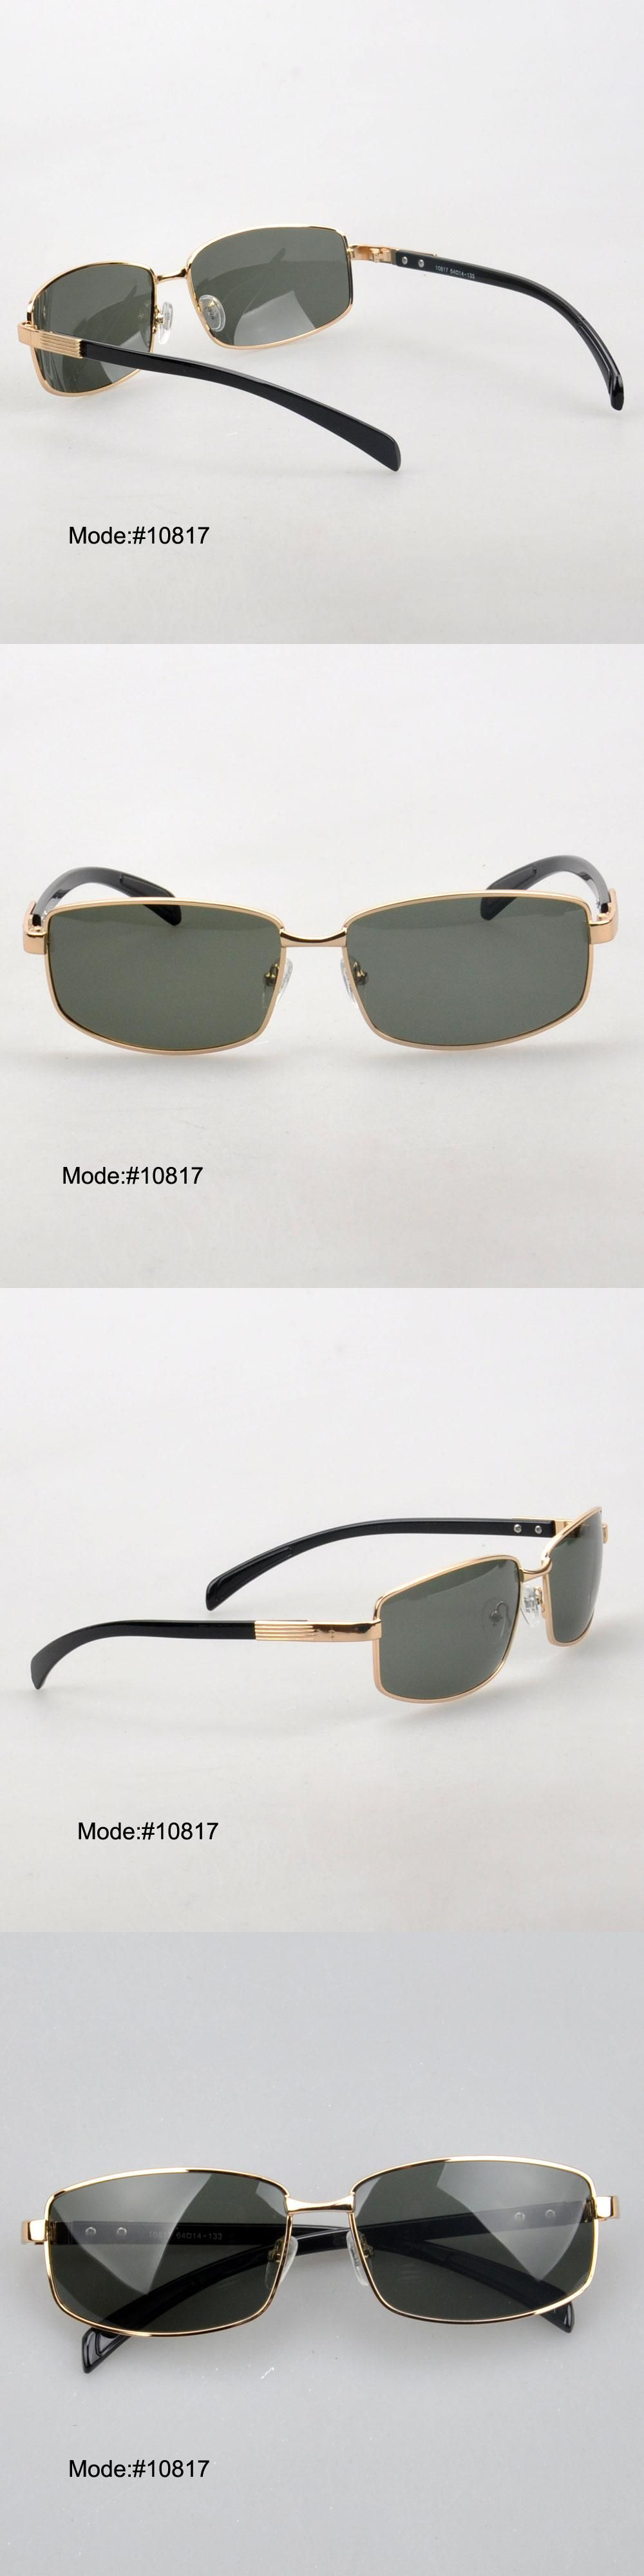 0fd3f743499 big sale 10817 Fast delivery High Quality and driving polarized sunshades  eyewear eyeglasses sunglasses